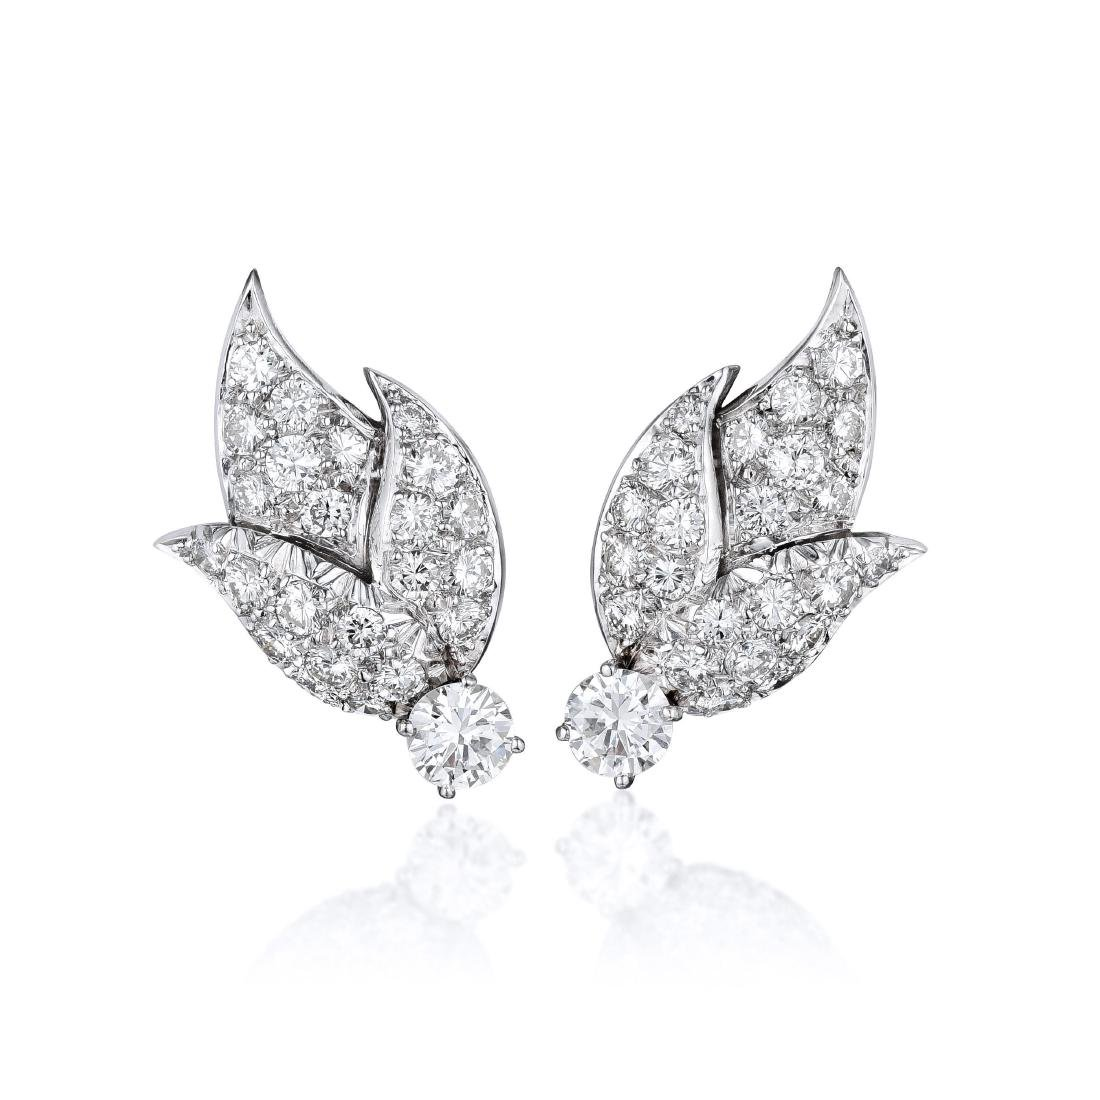 Erwin Pearl Diamond Platinum Earrings